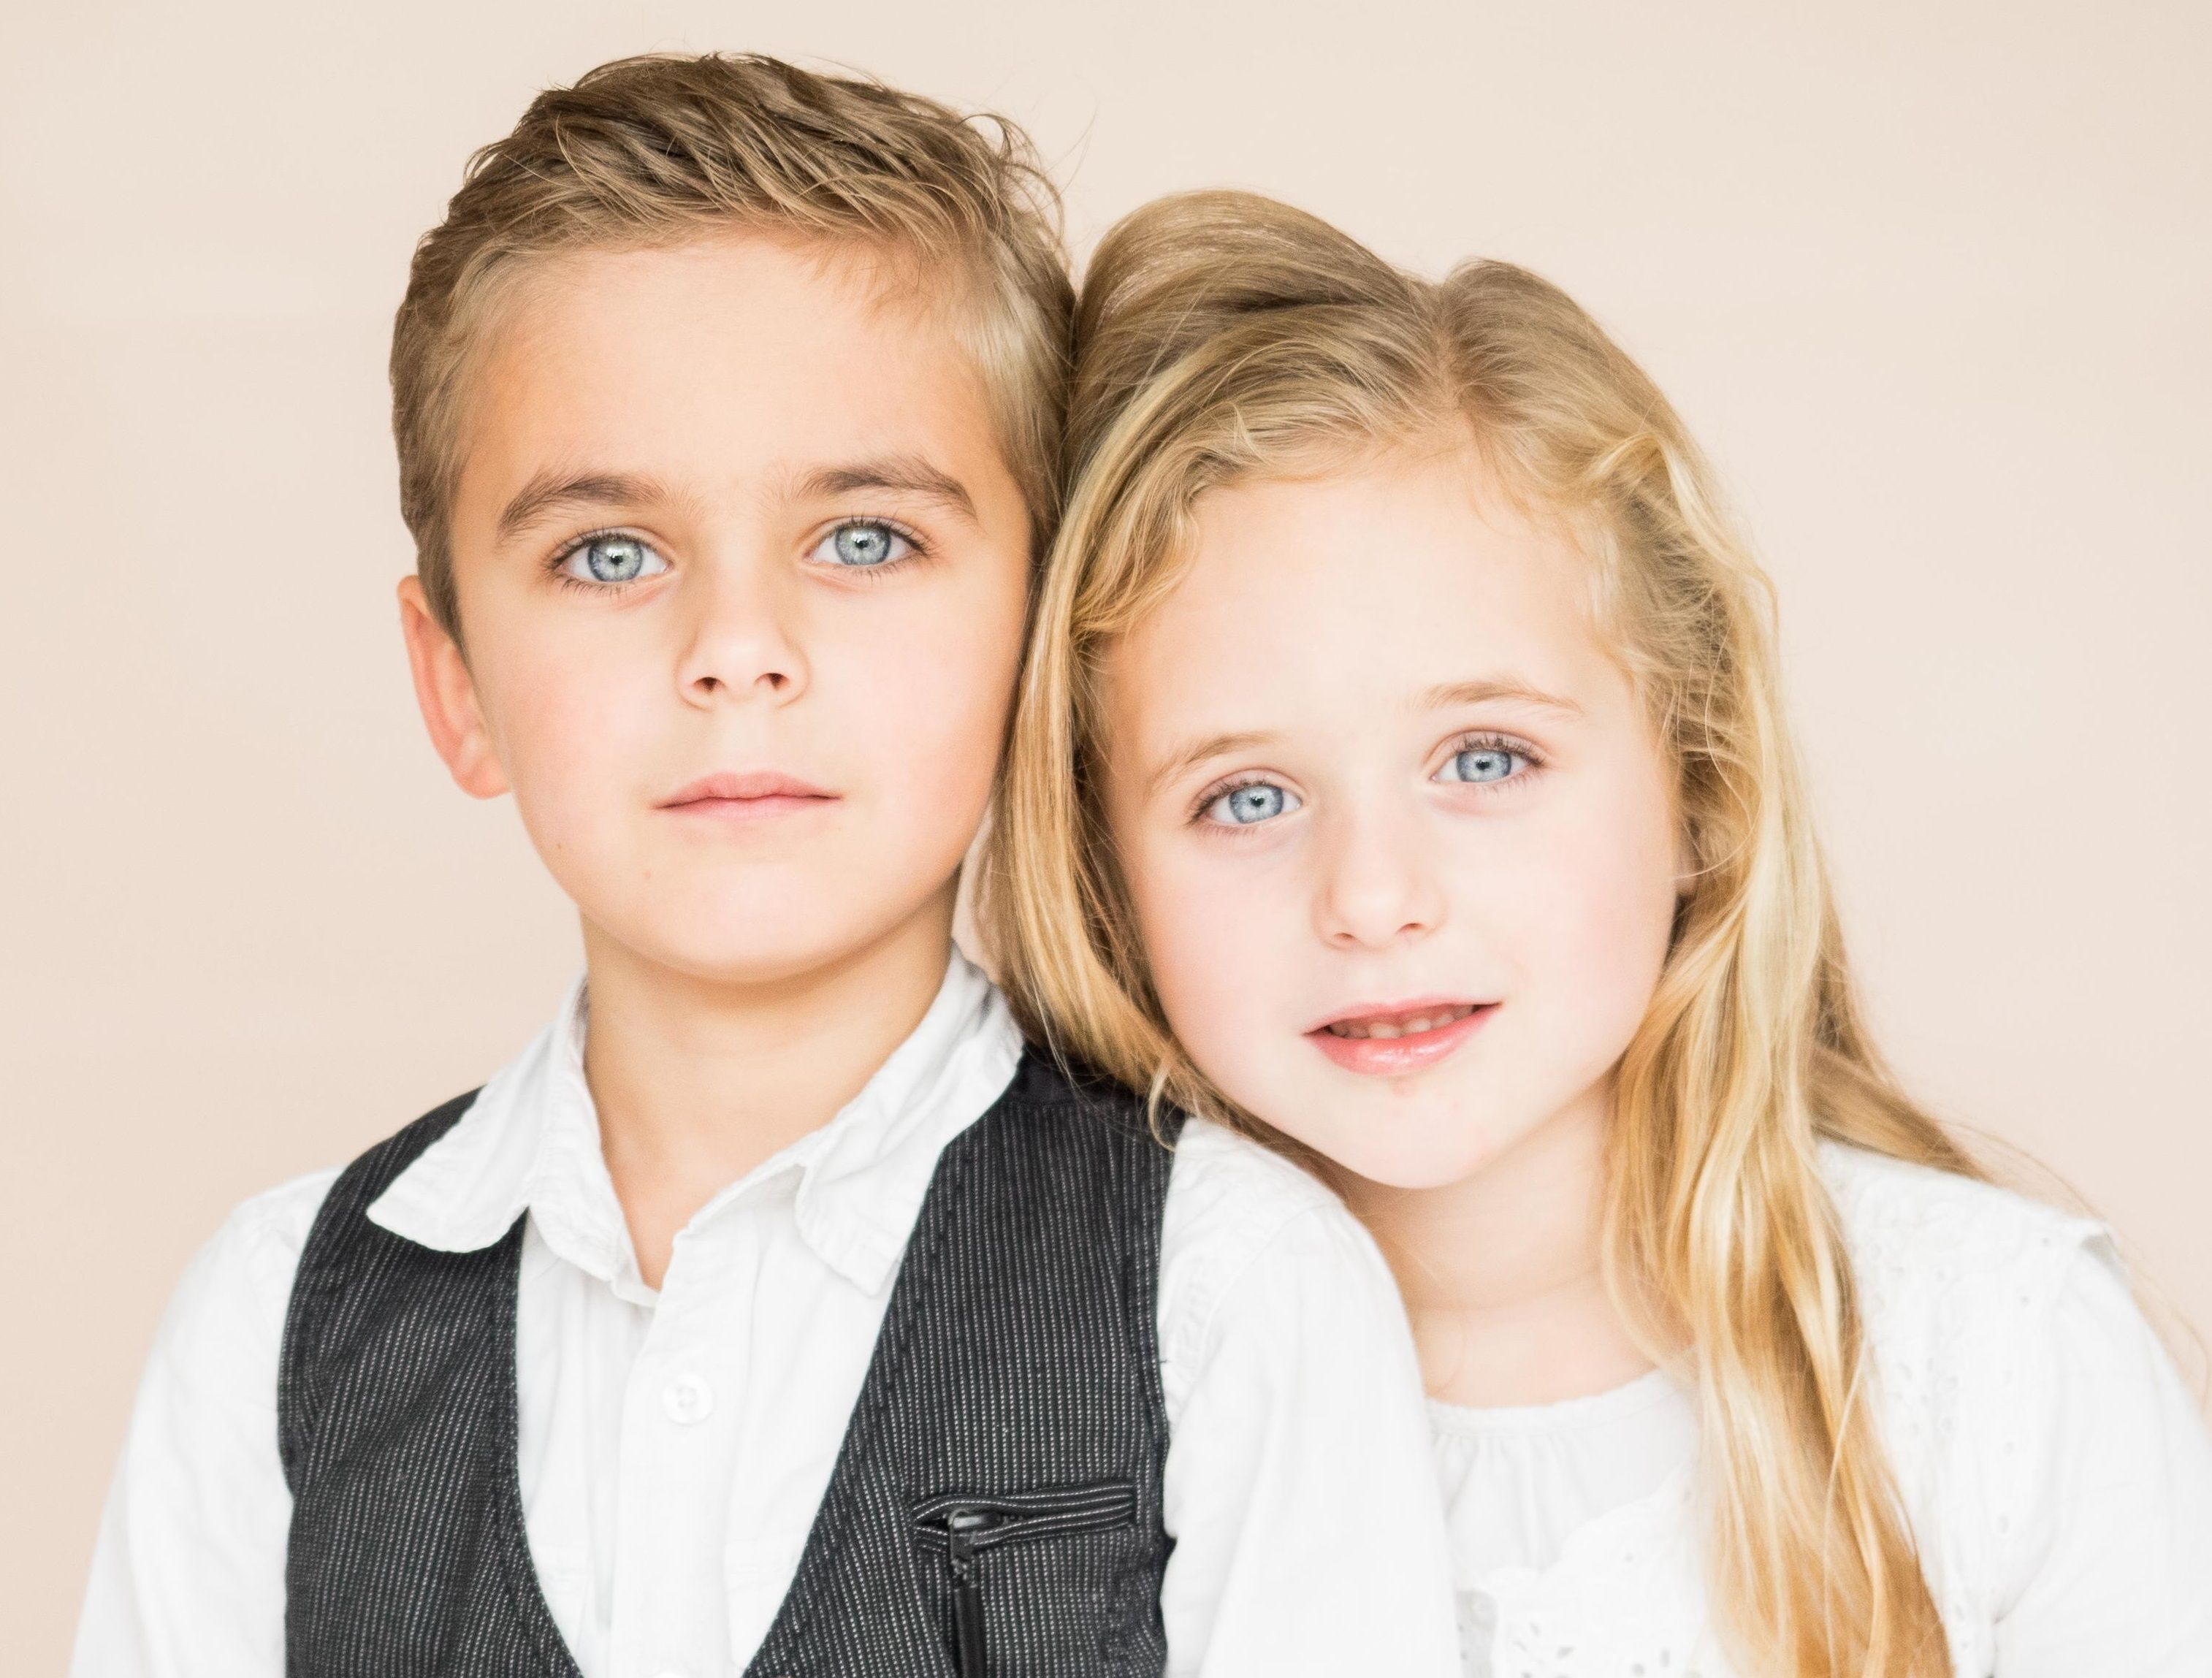 Fraternal twins boy and girl   Character Inspiration - Twins ...